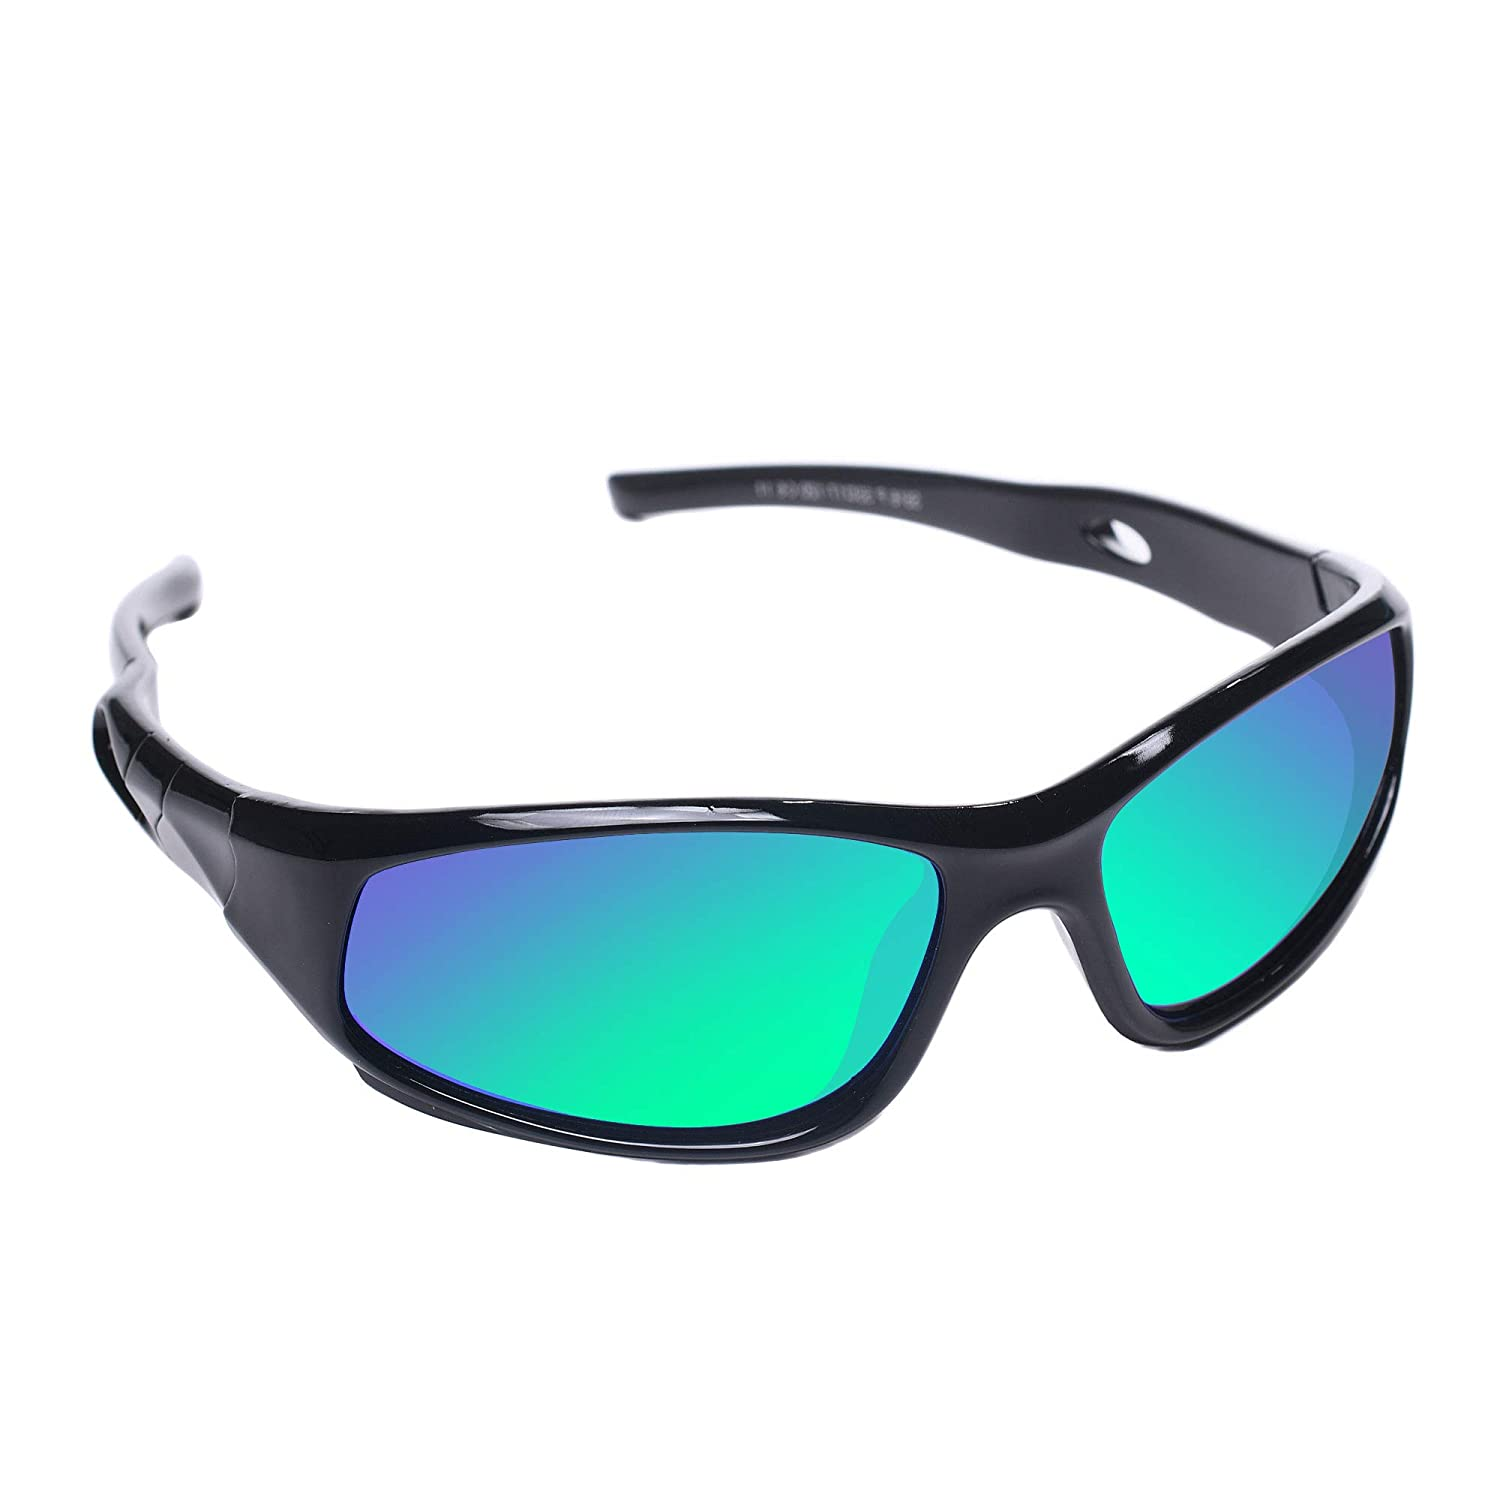 ea4d7bf1087d Amazon.com: AODUOKE Sports PolarizKids Sunglasses For Boys Girls Children  Youth Sunglasses With Strap (Black | Green Lens): Clothing